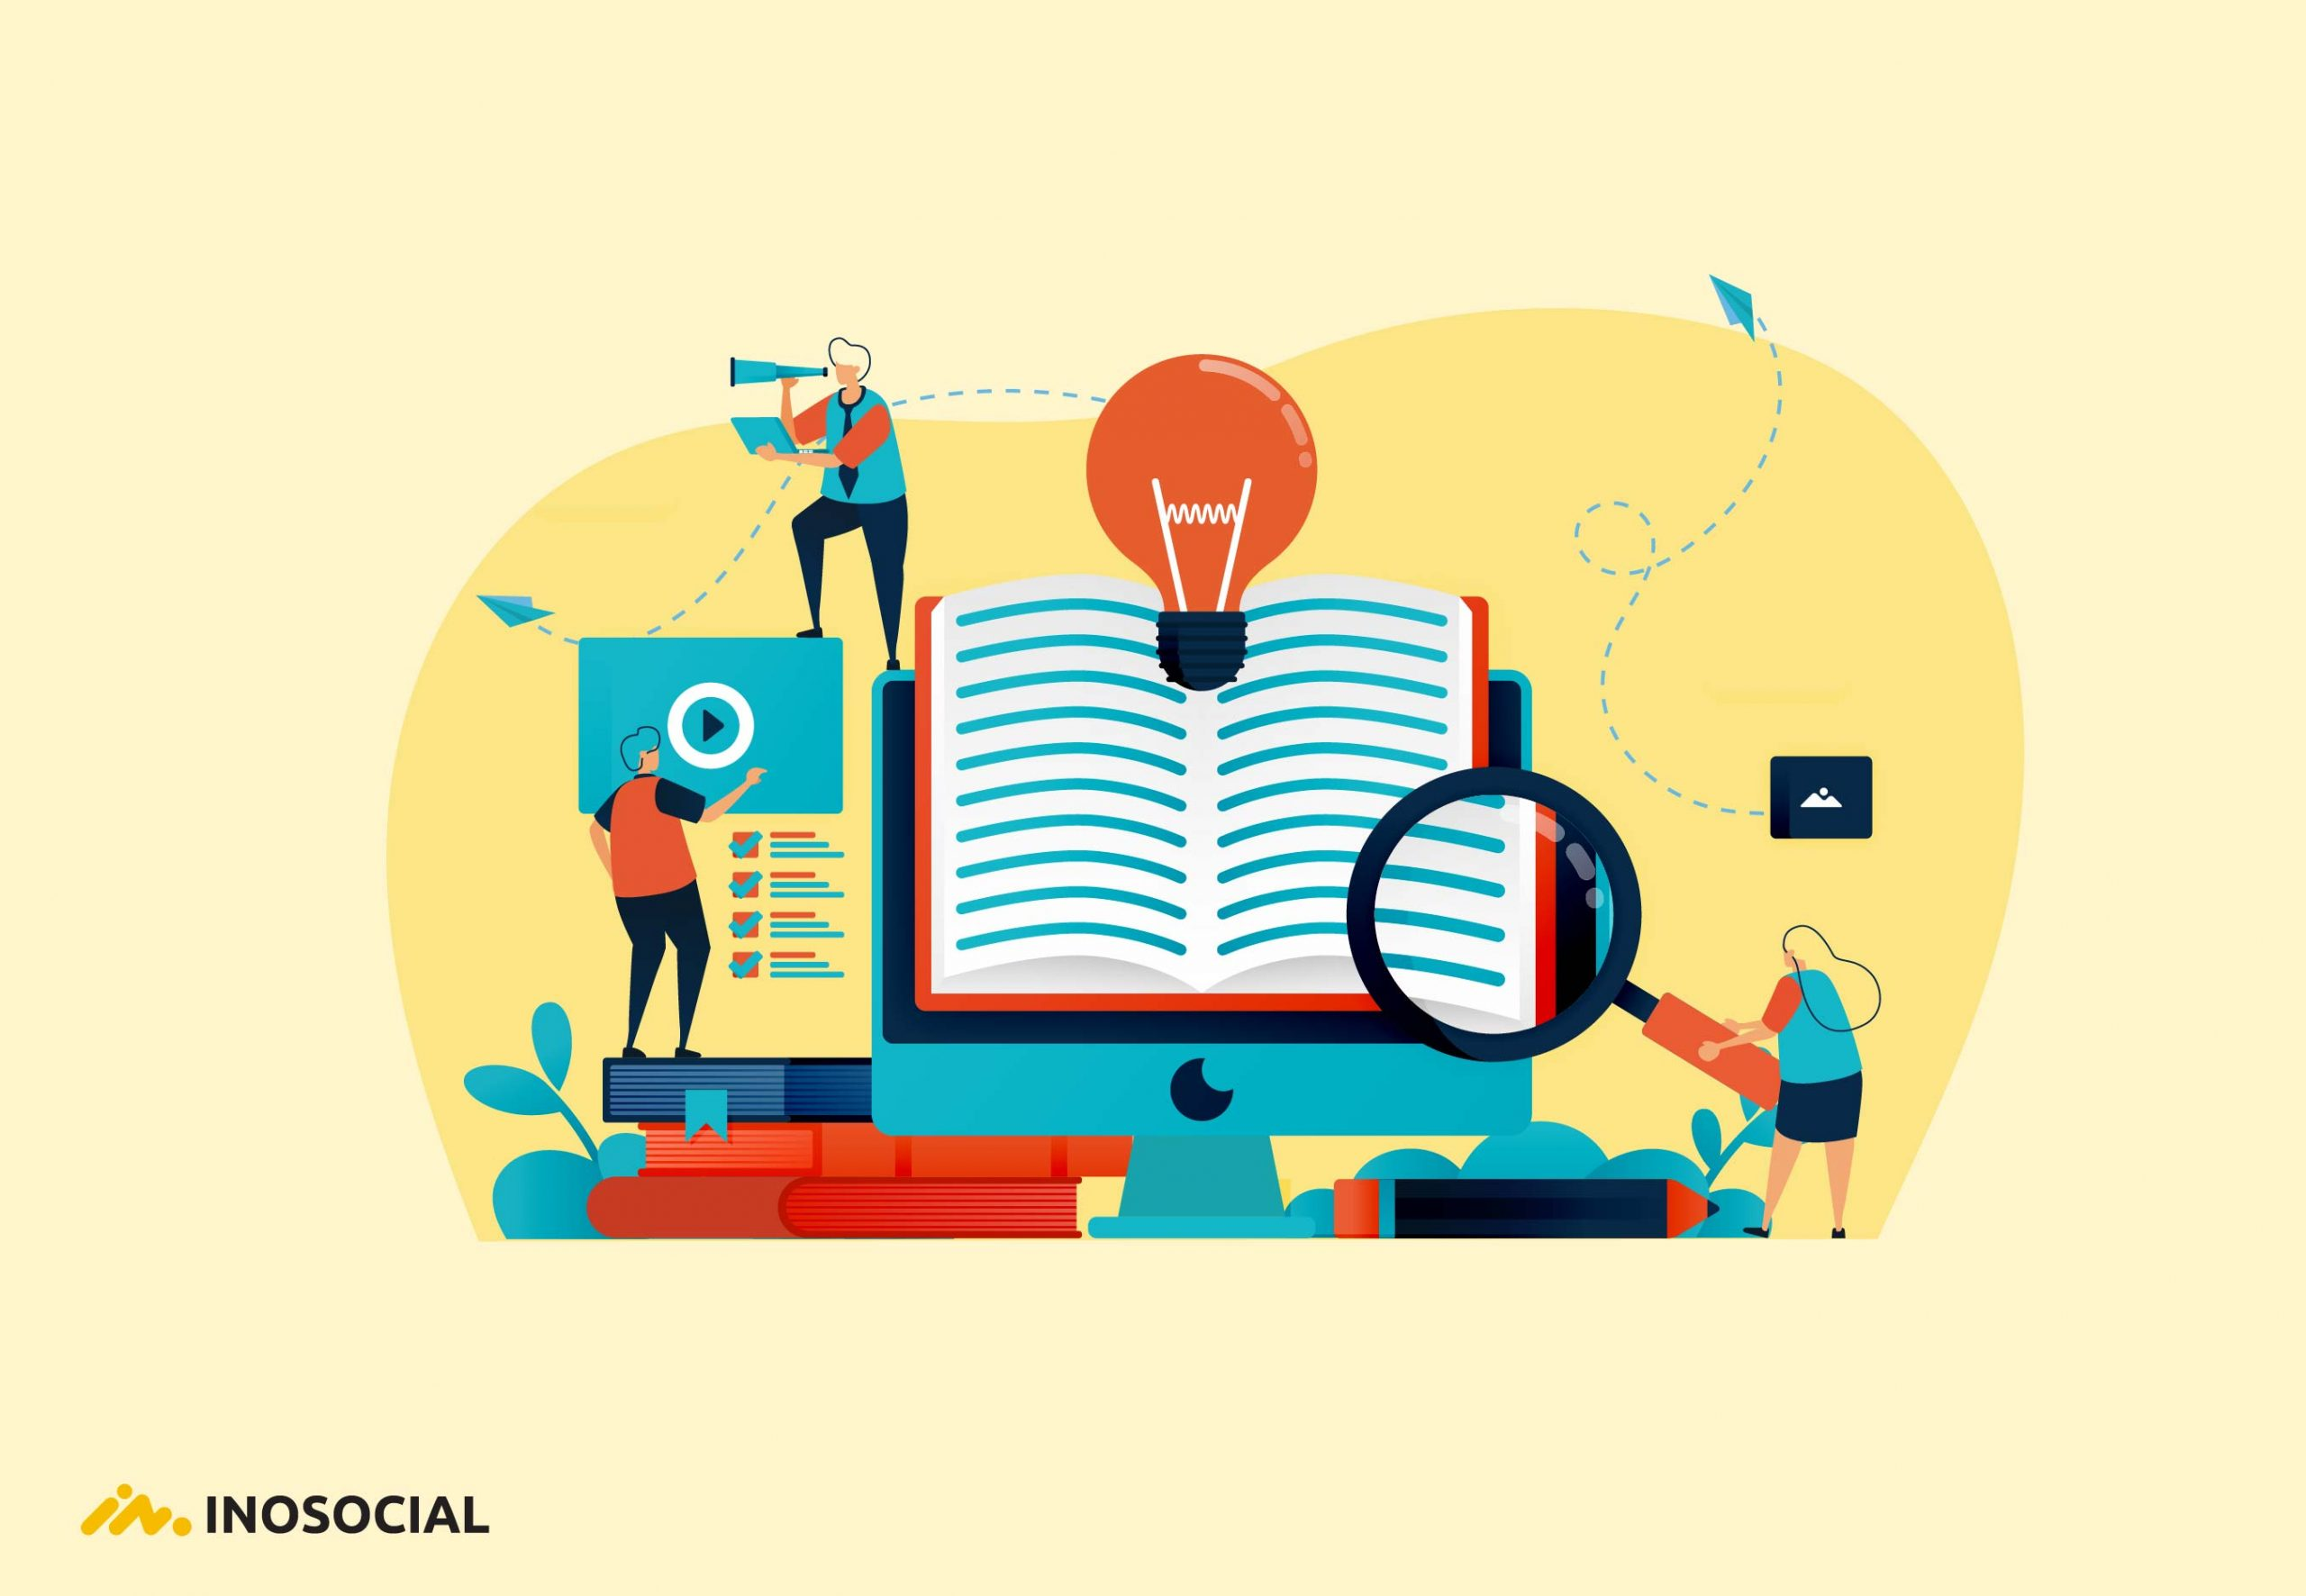 What are the essential aspects of eBook marketing